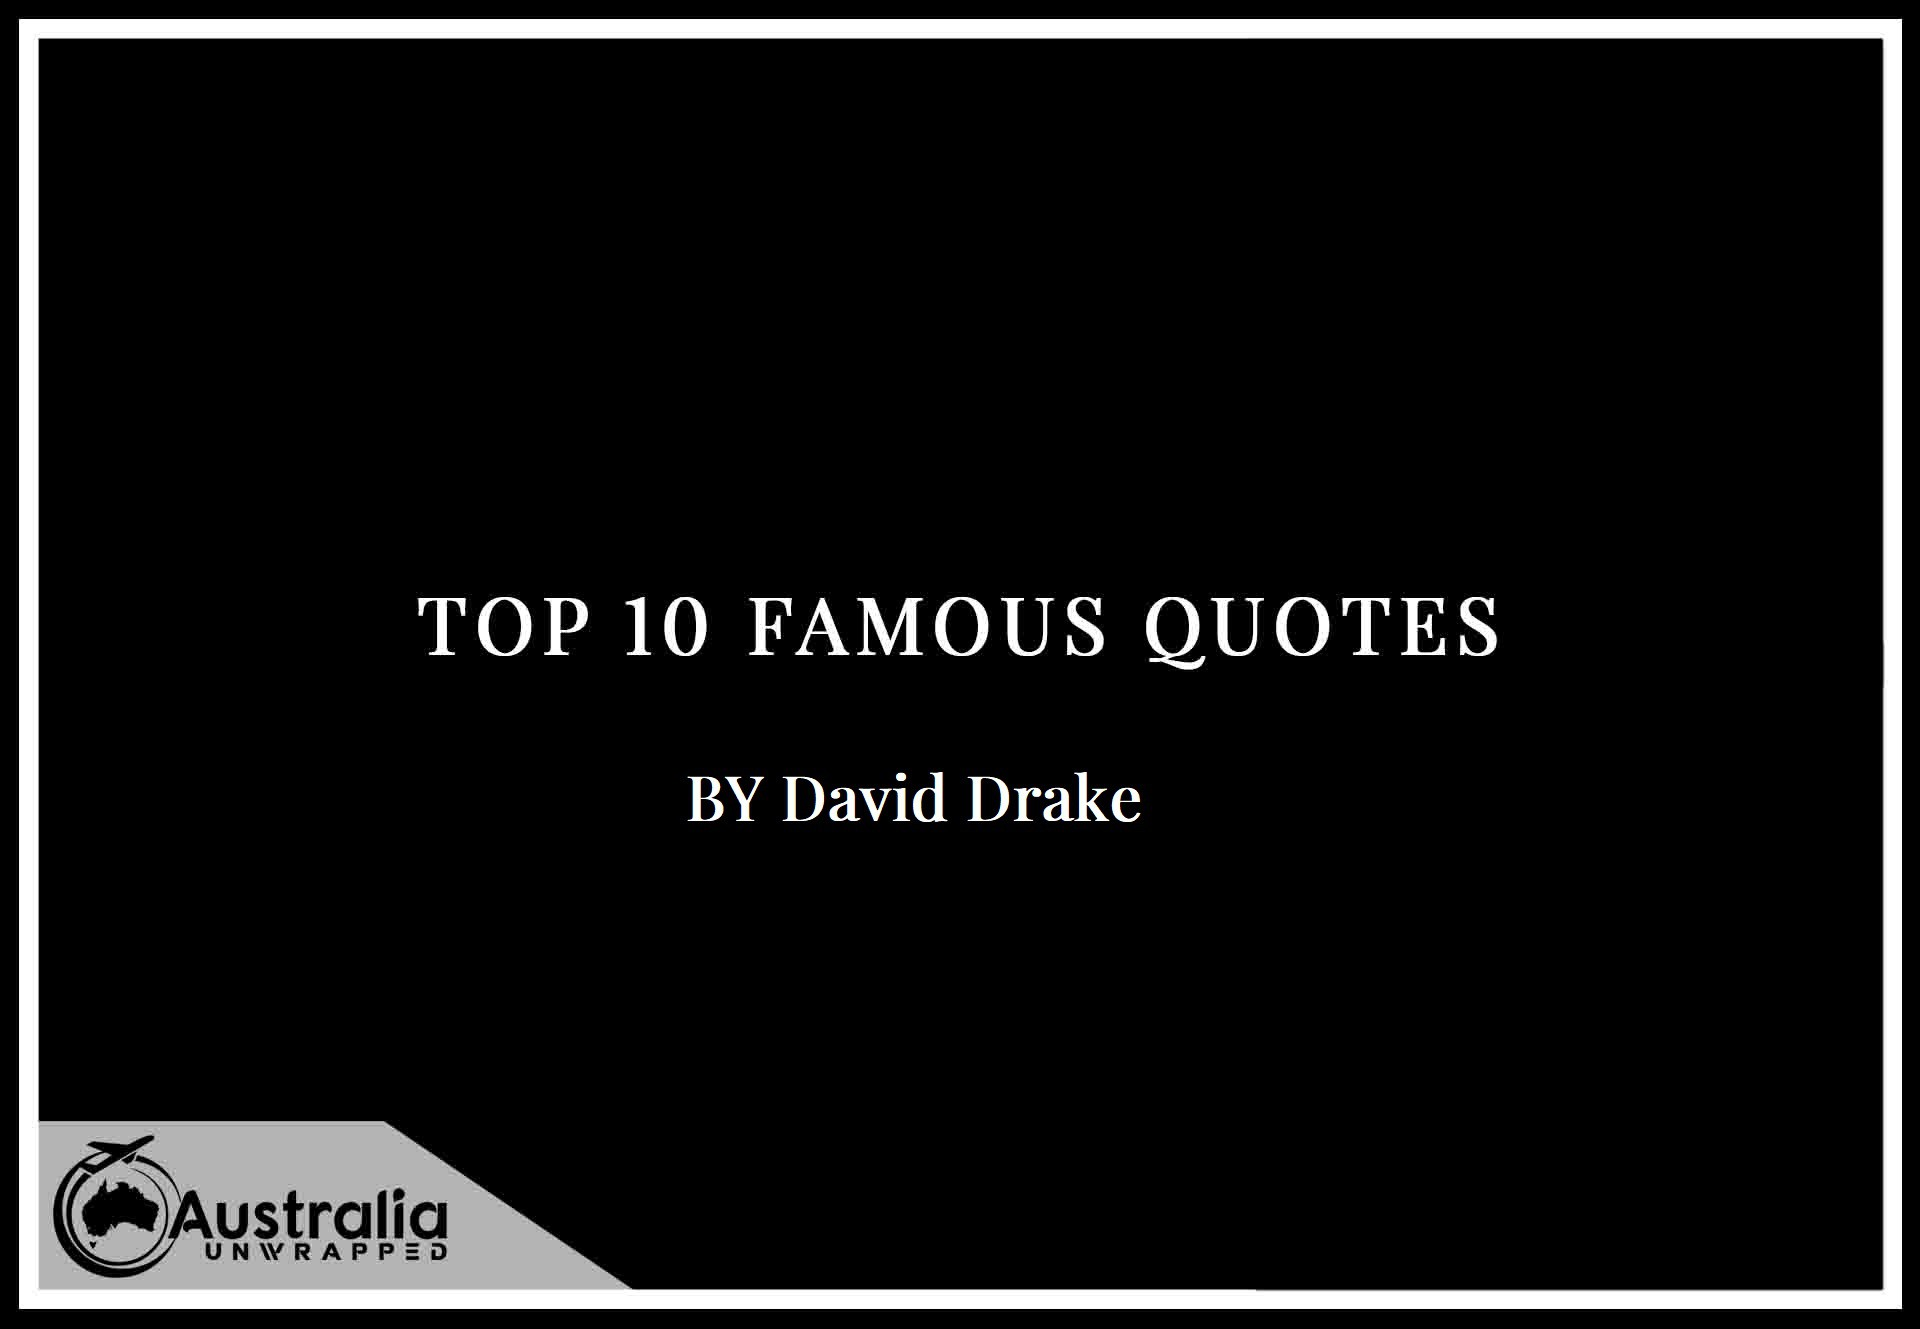 Top 10 Famous Quotes by Author Drake